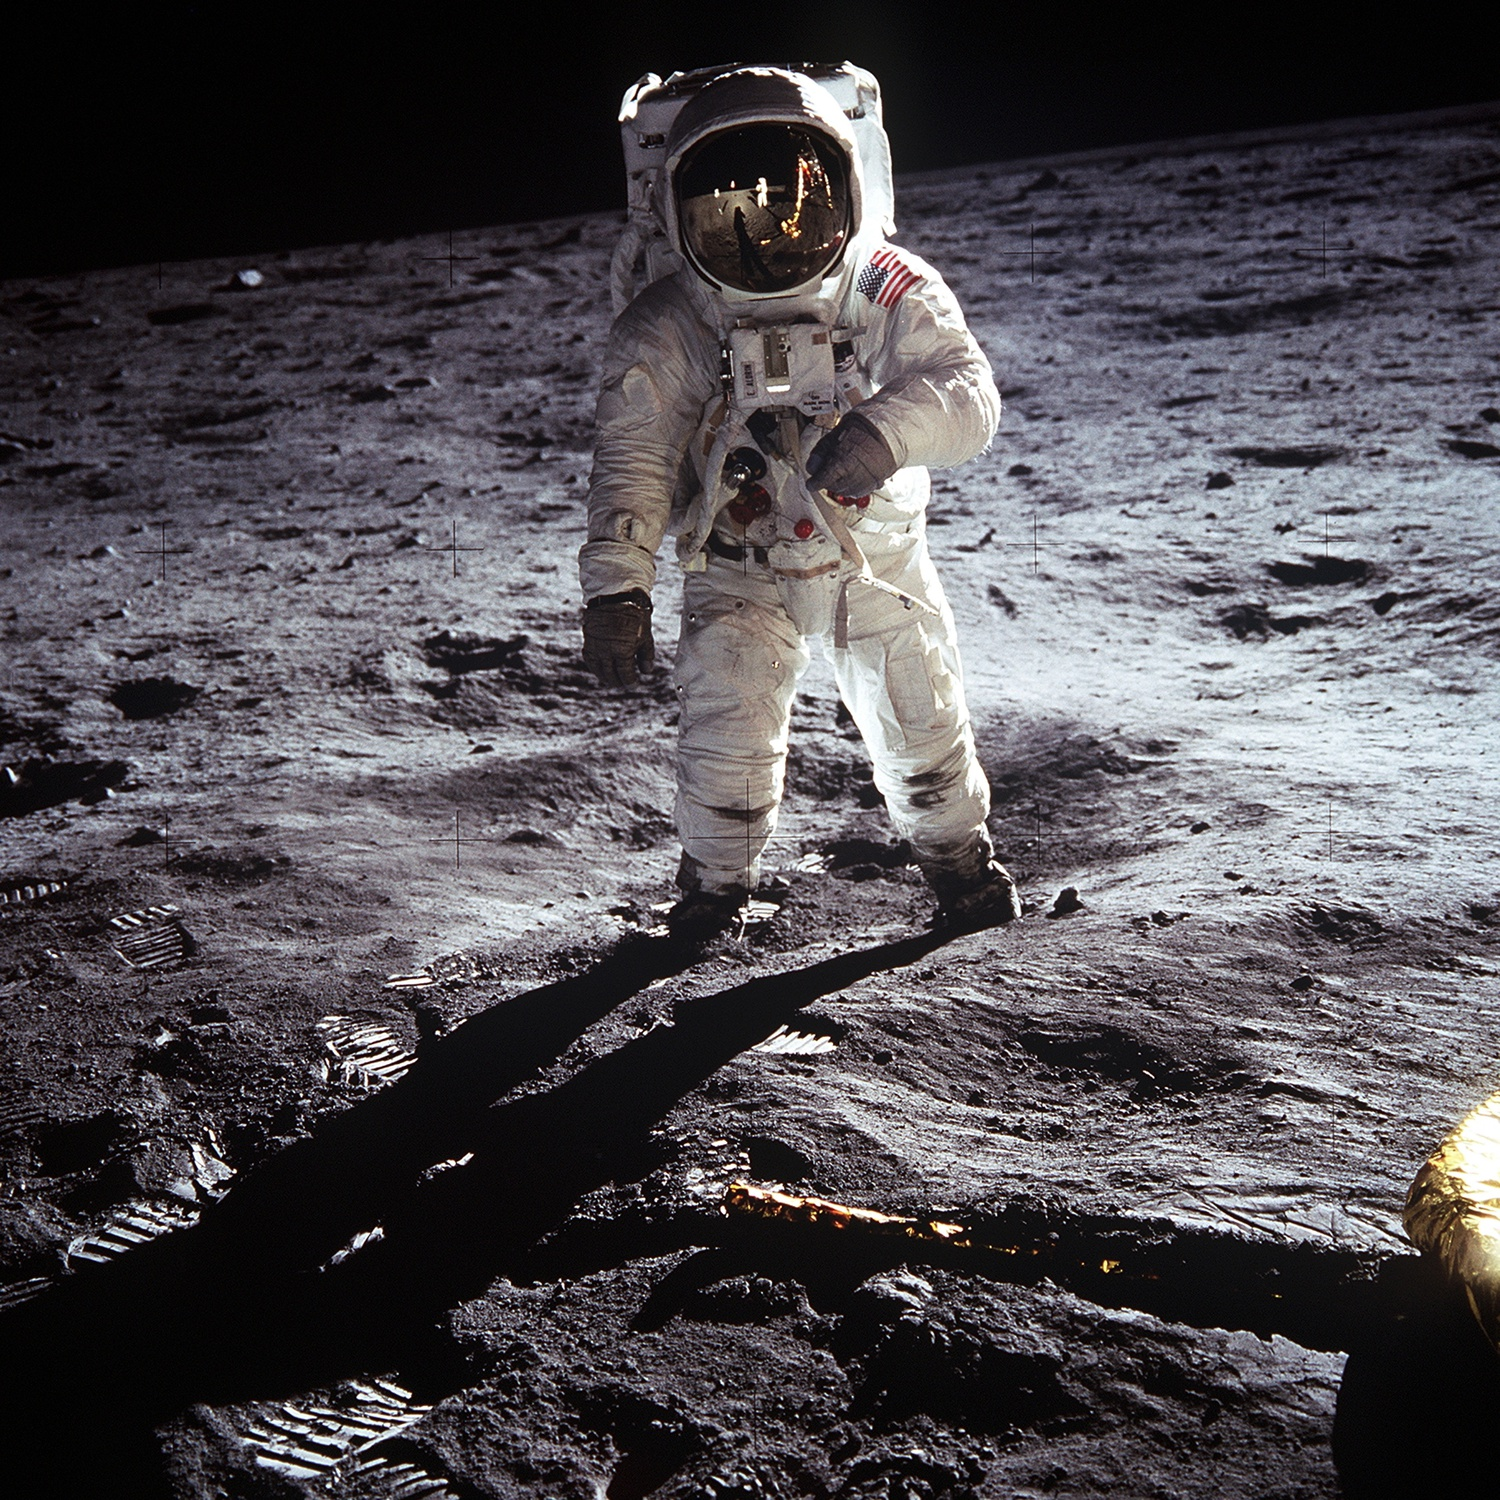 Astronaut Buzz Aldrin on the moon in 1969.